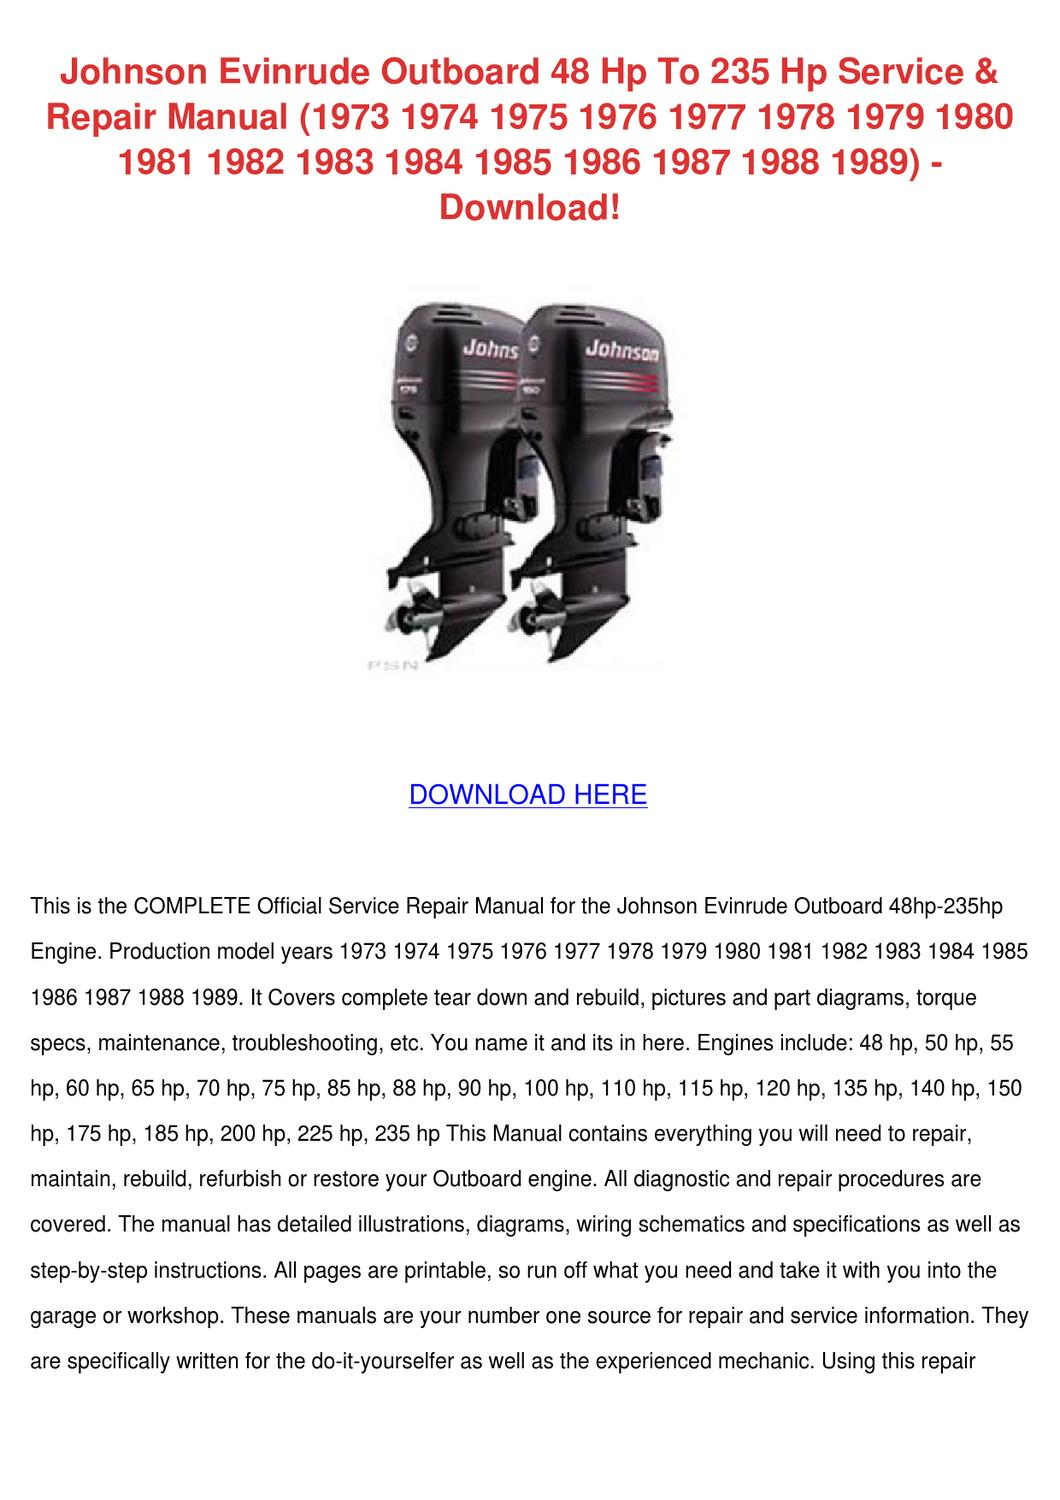 1973 evinrude 135 wiring diagram johnson evinrude outboard 48 hp to 235 hp ser by gertrudefinn issuu  johnson evinrude outboard 48 hp to 235